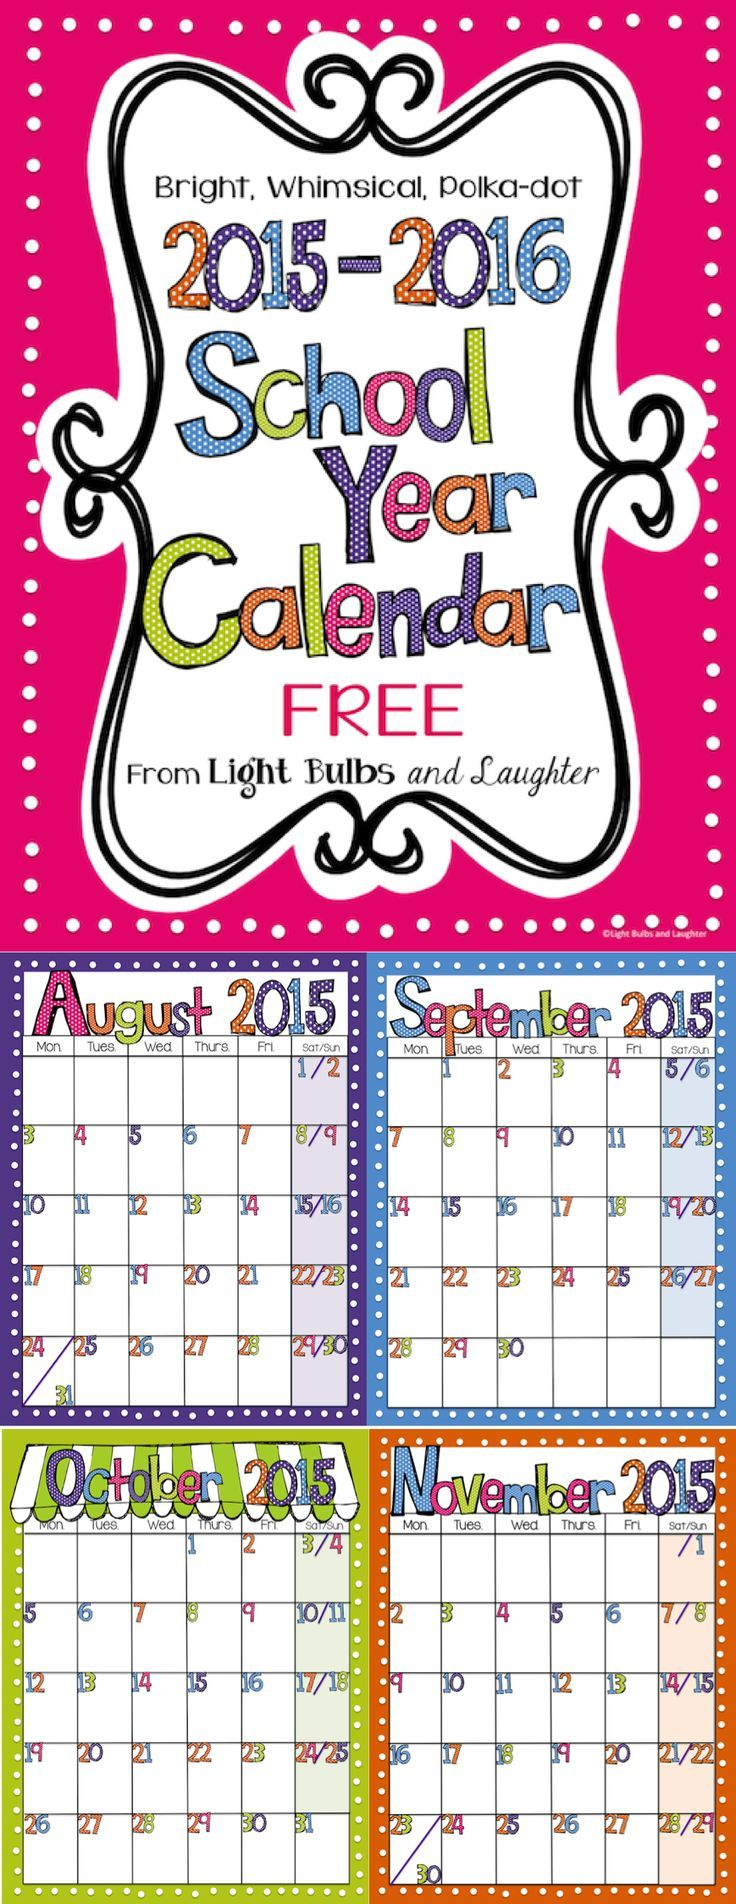 School year calendar clipart svg free download Editable FREE Bright Polka Dot Monthly Calendars 2019-2020 ... svg free download